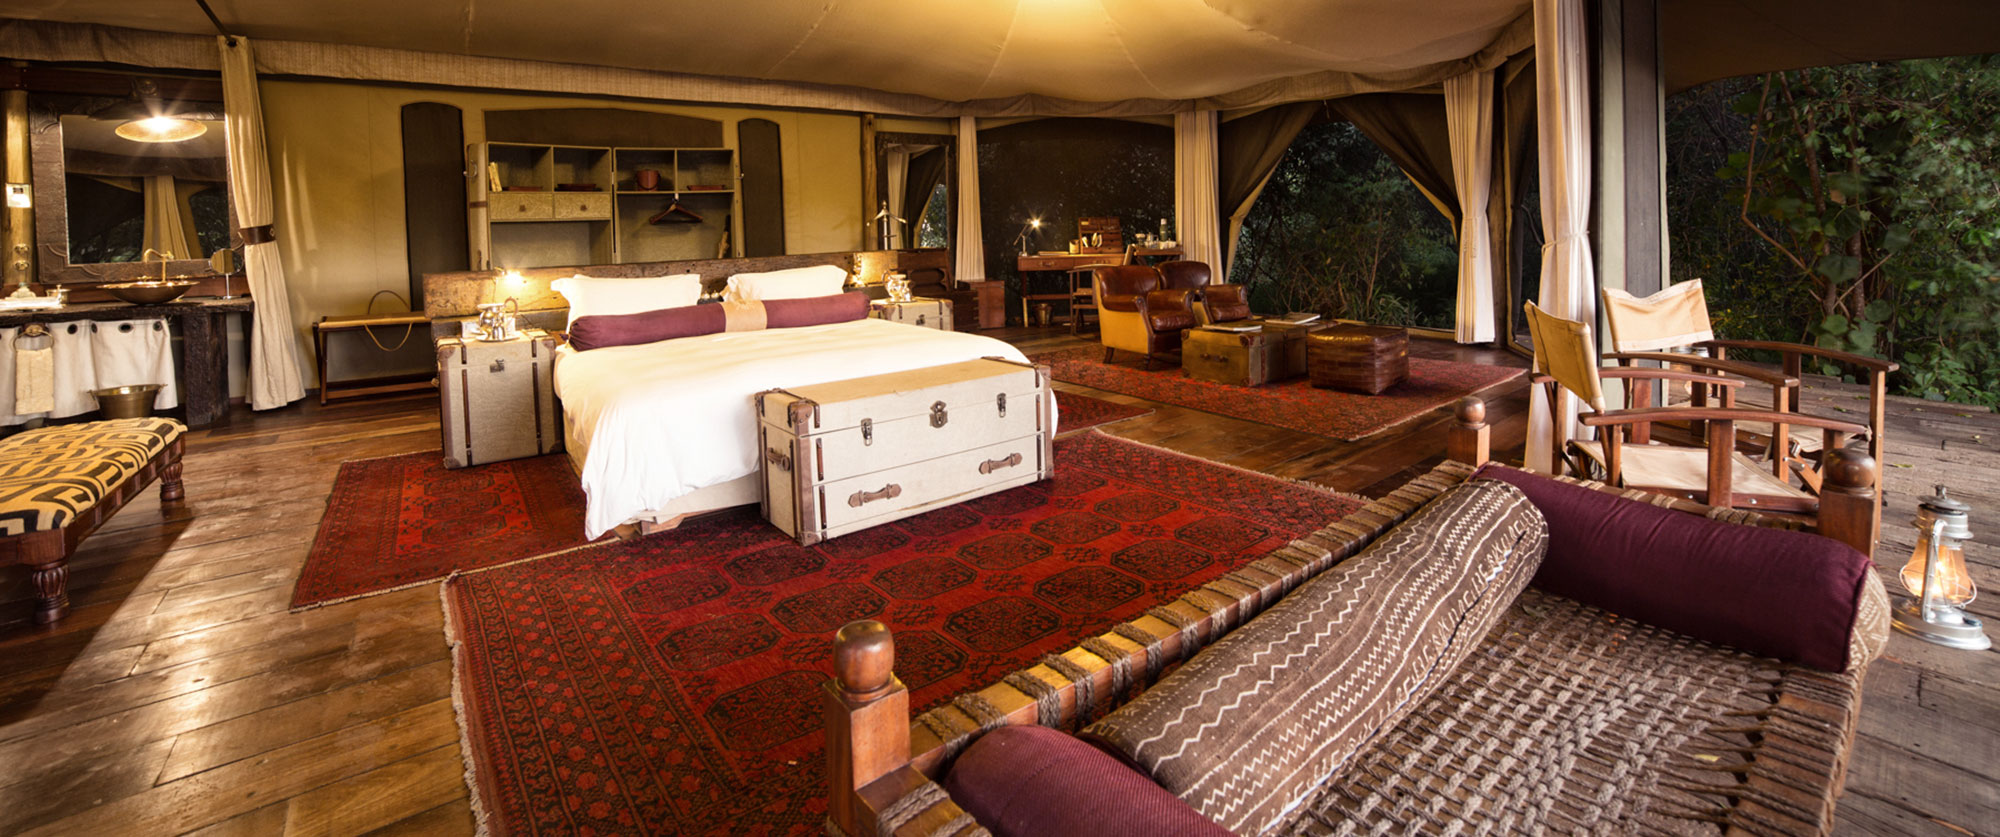 Classic Kenya Luxury Safari Package - Mara Plains Africa